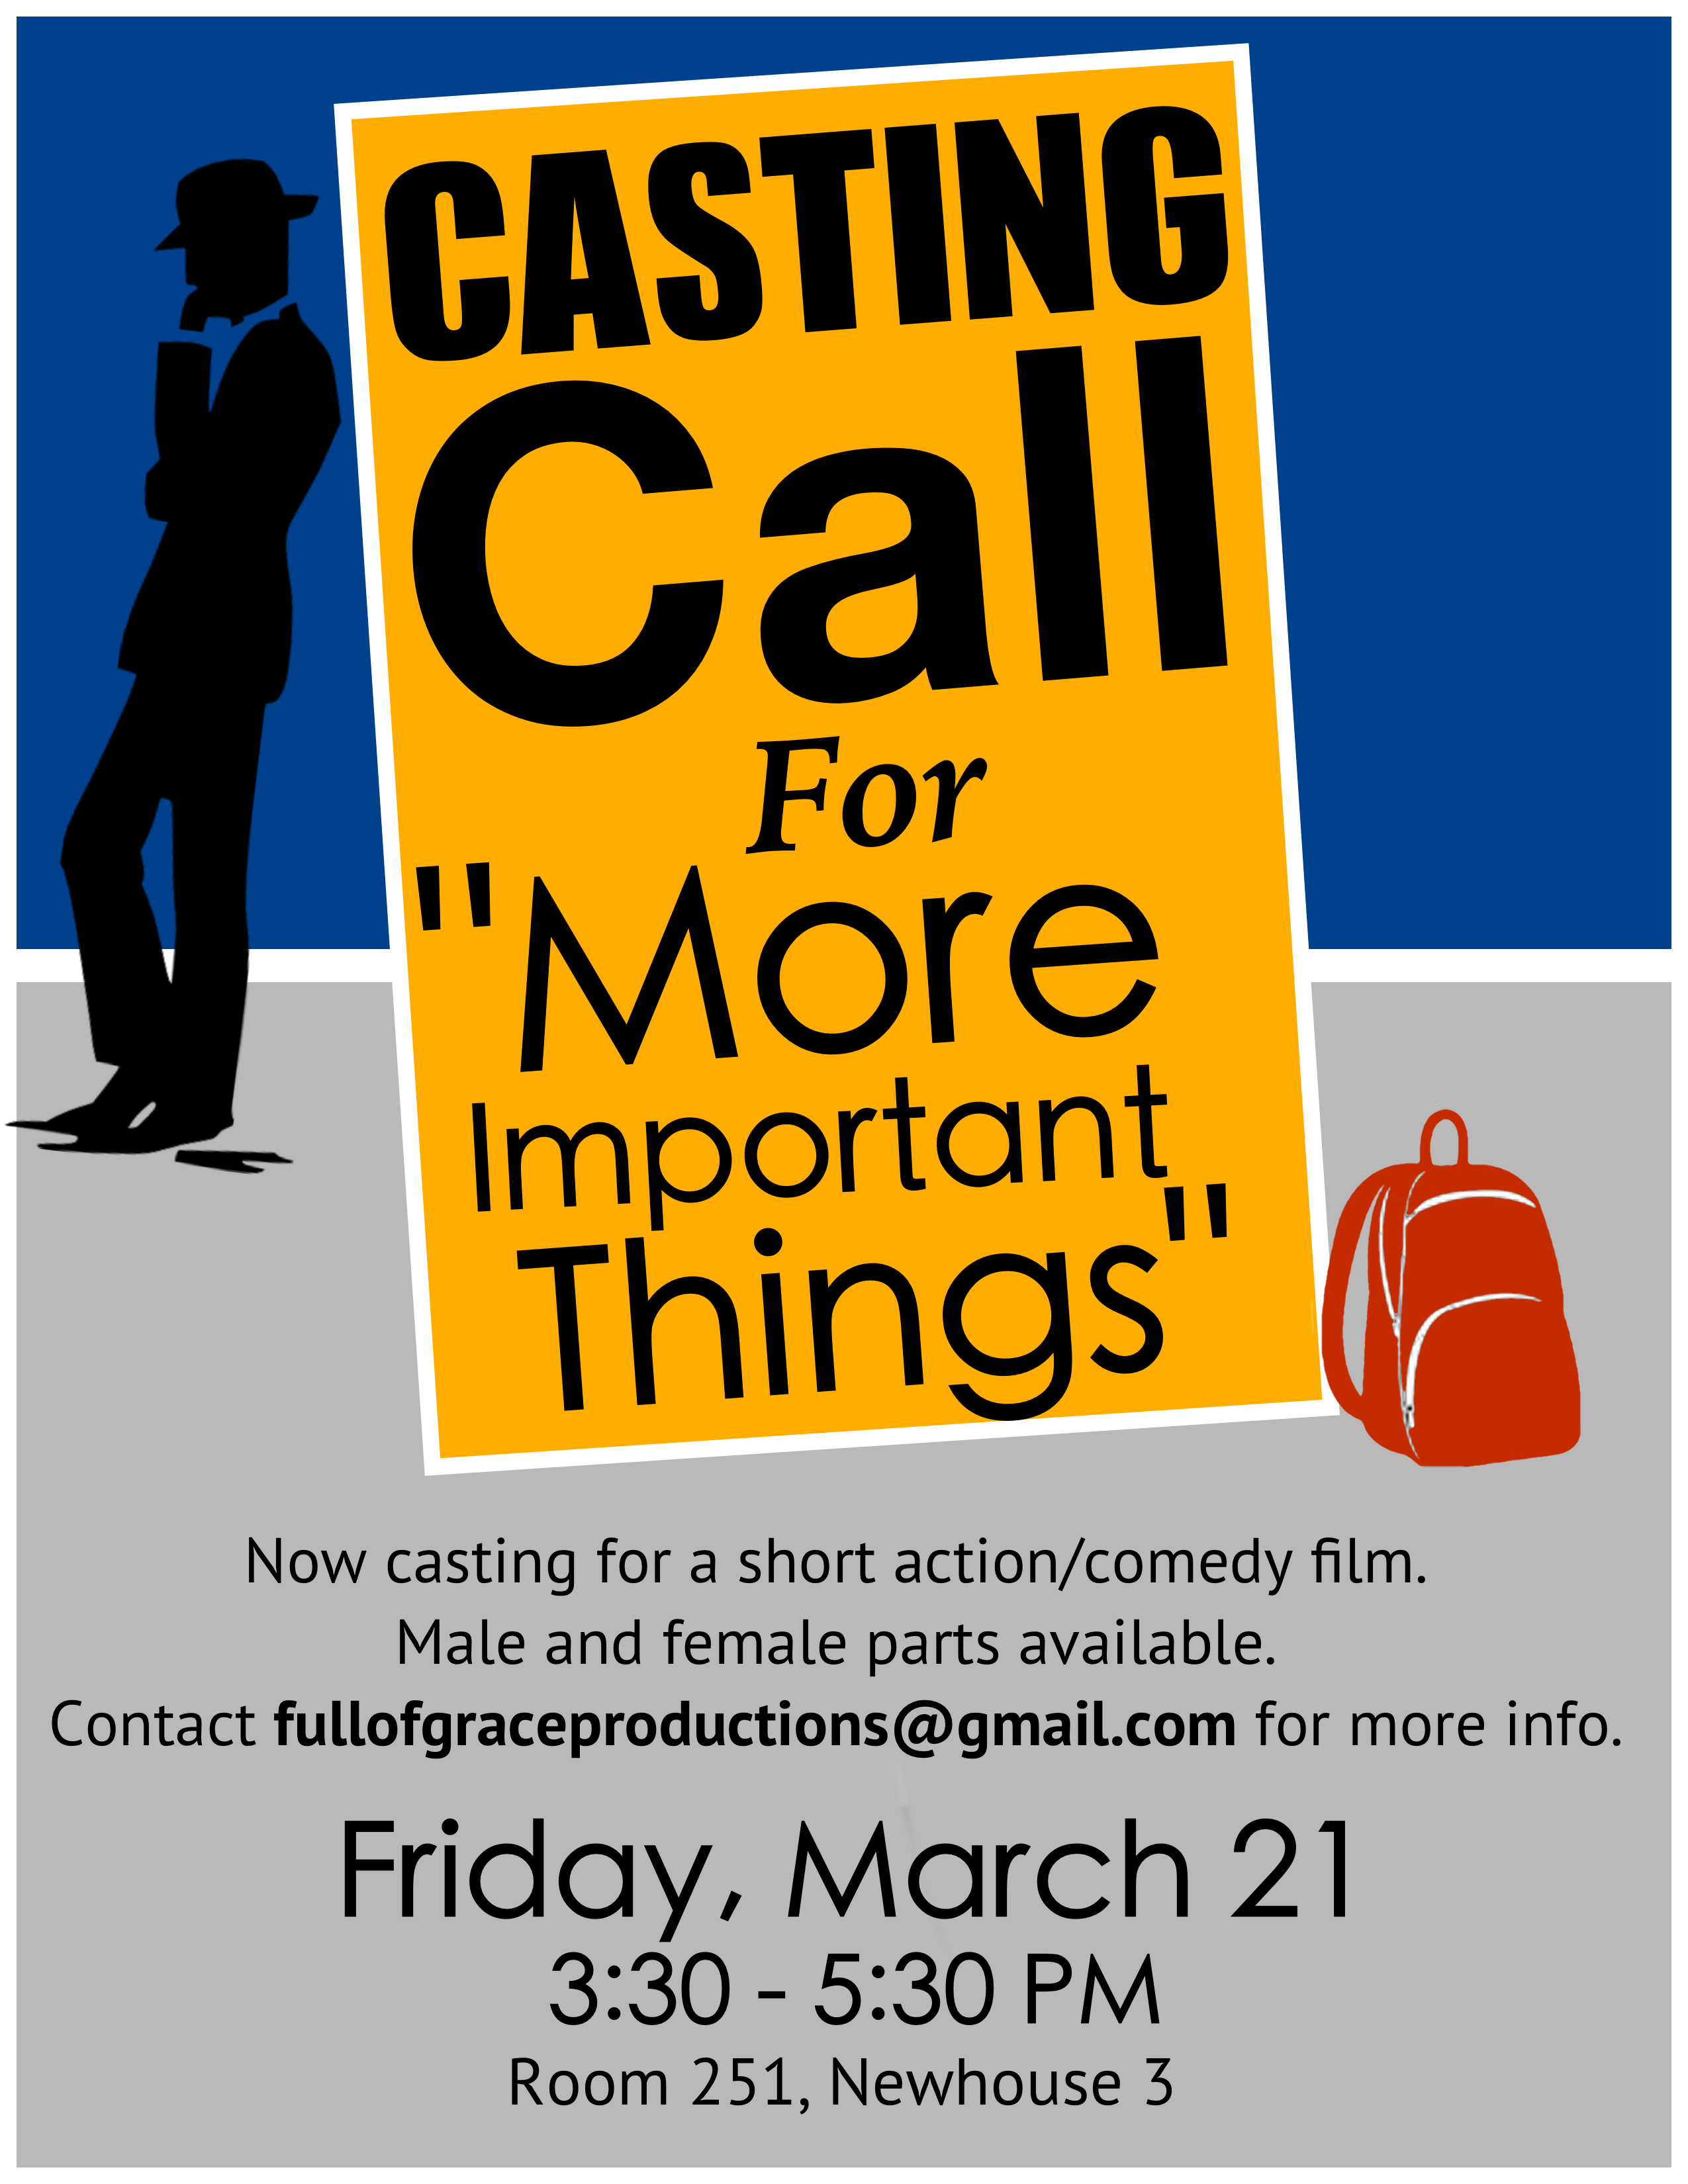 Casting Call Poster For More Important Things